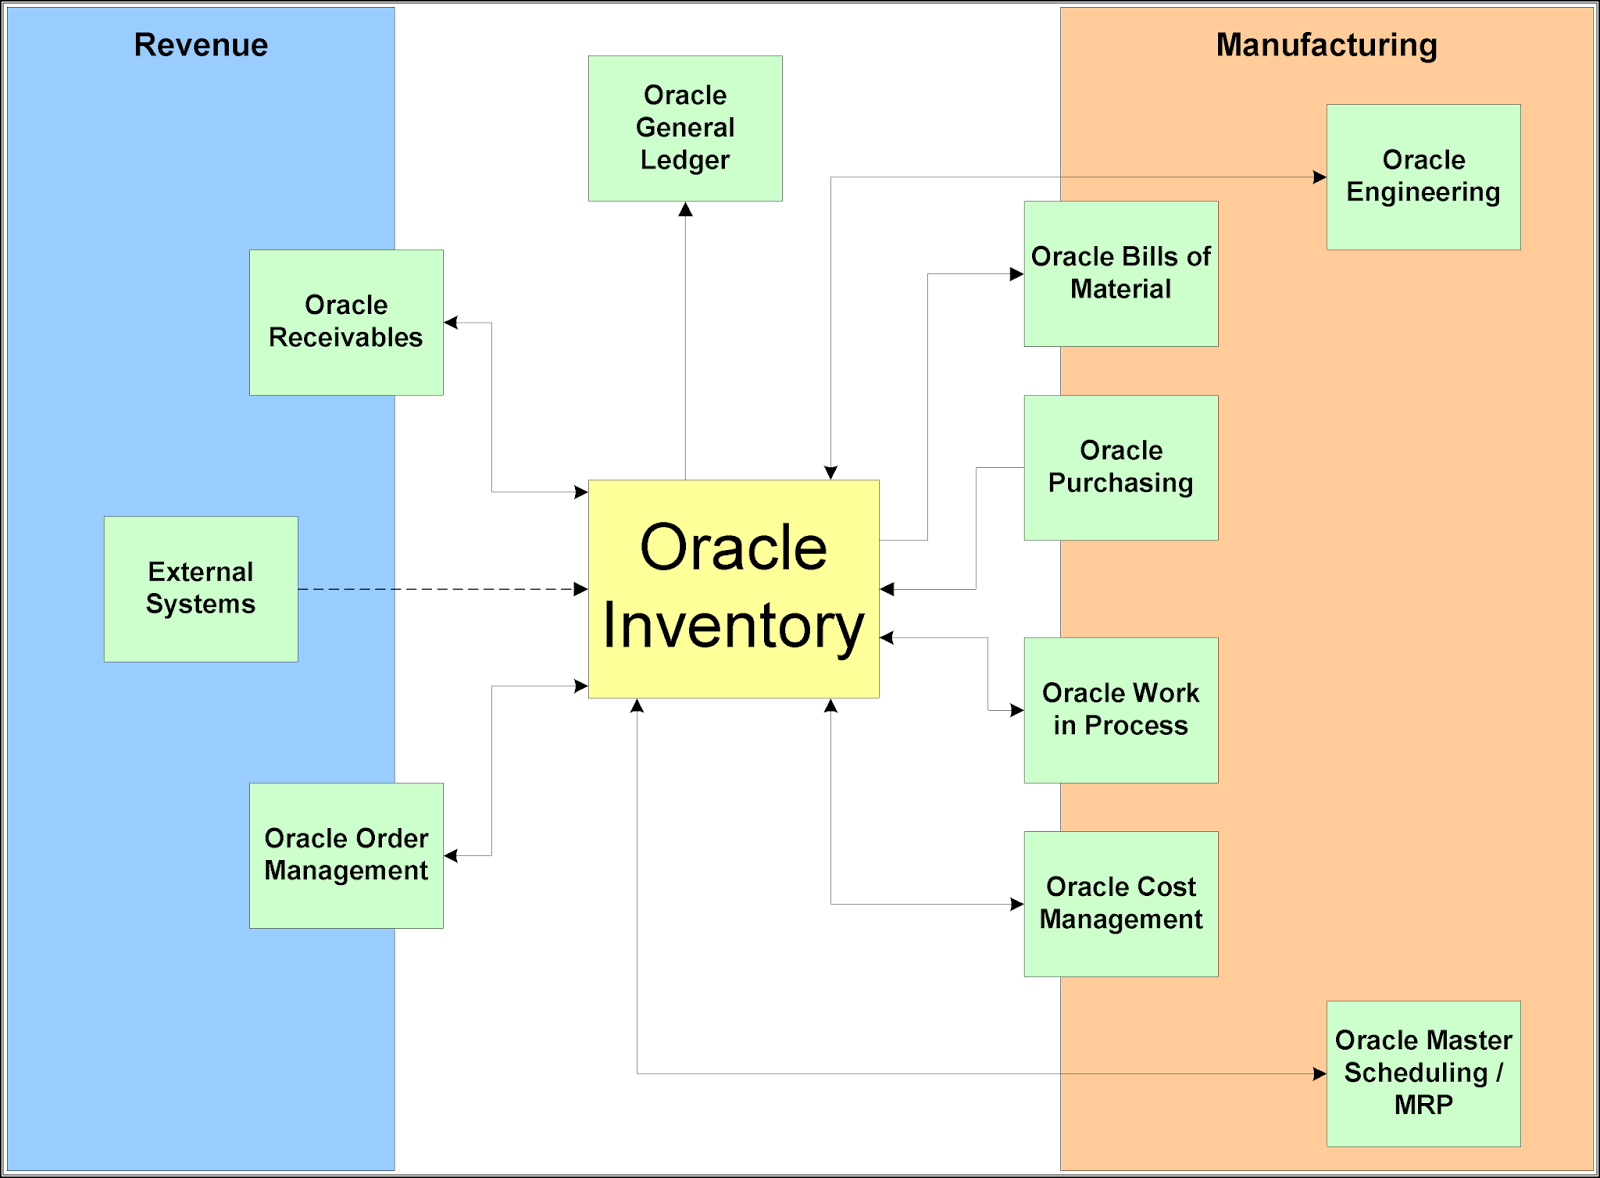 The Inventory cycle is fully integrated into the Oracle Financial  Applications and the Inventory Modules interface directly with other Oracle  modules.